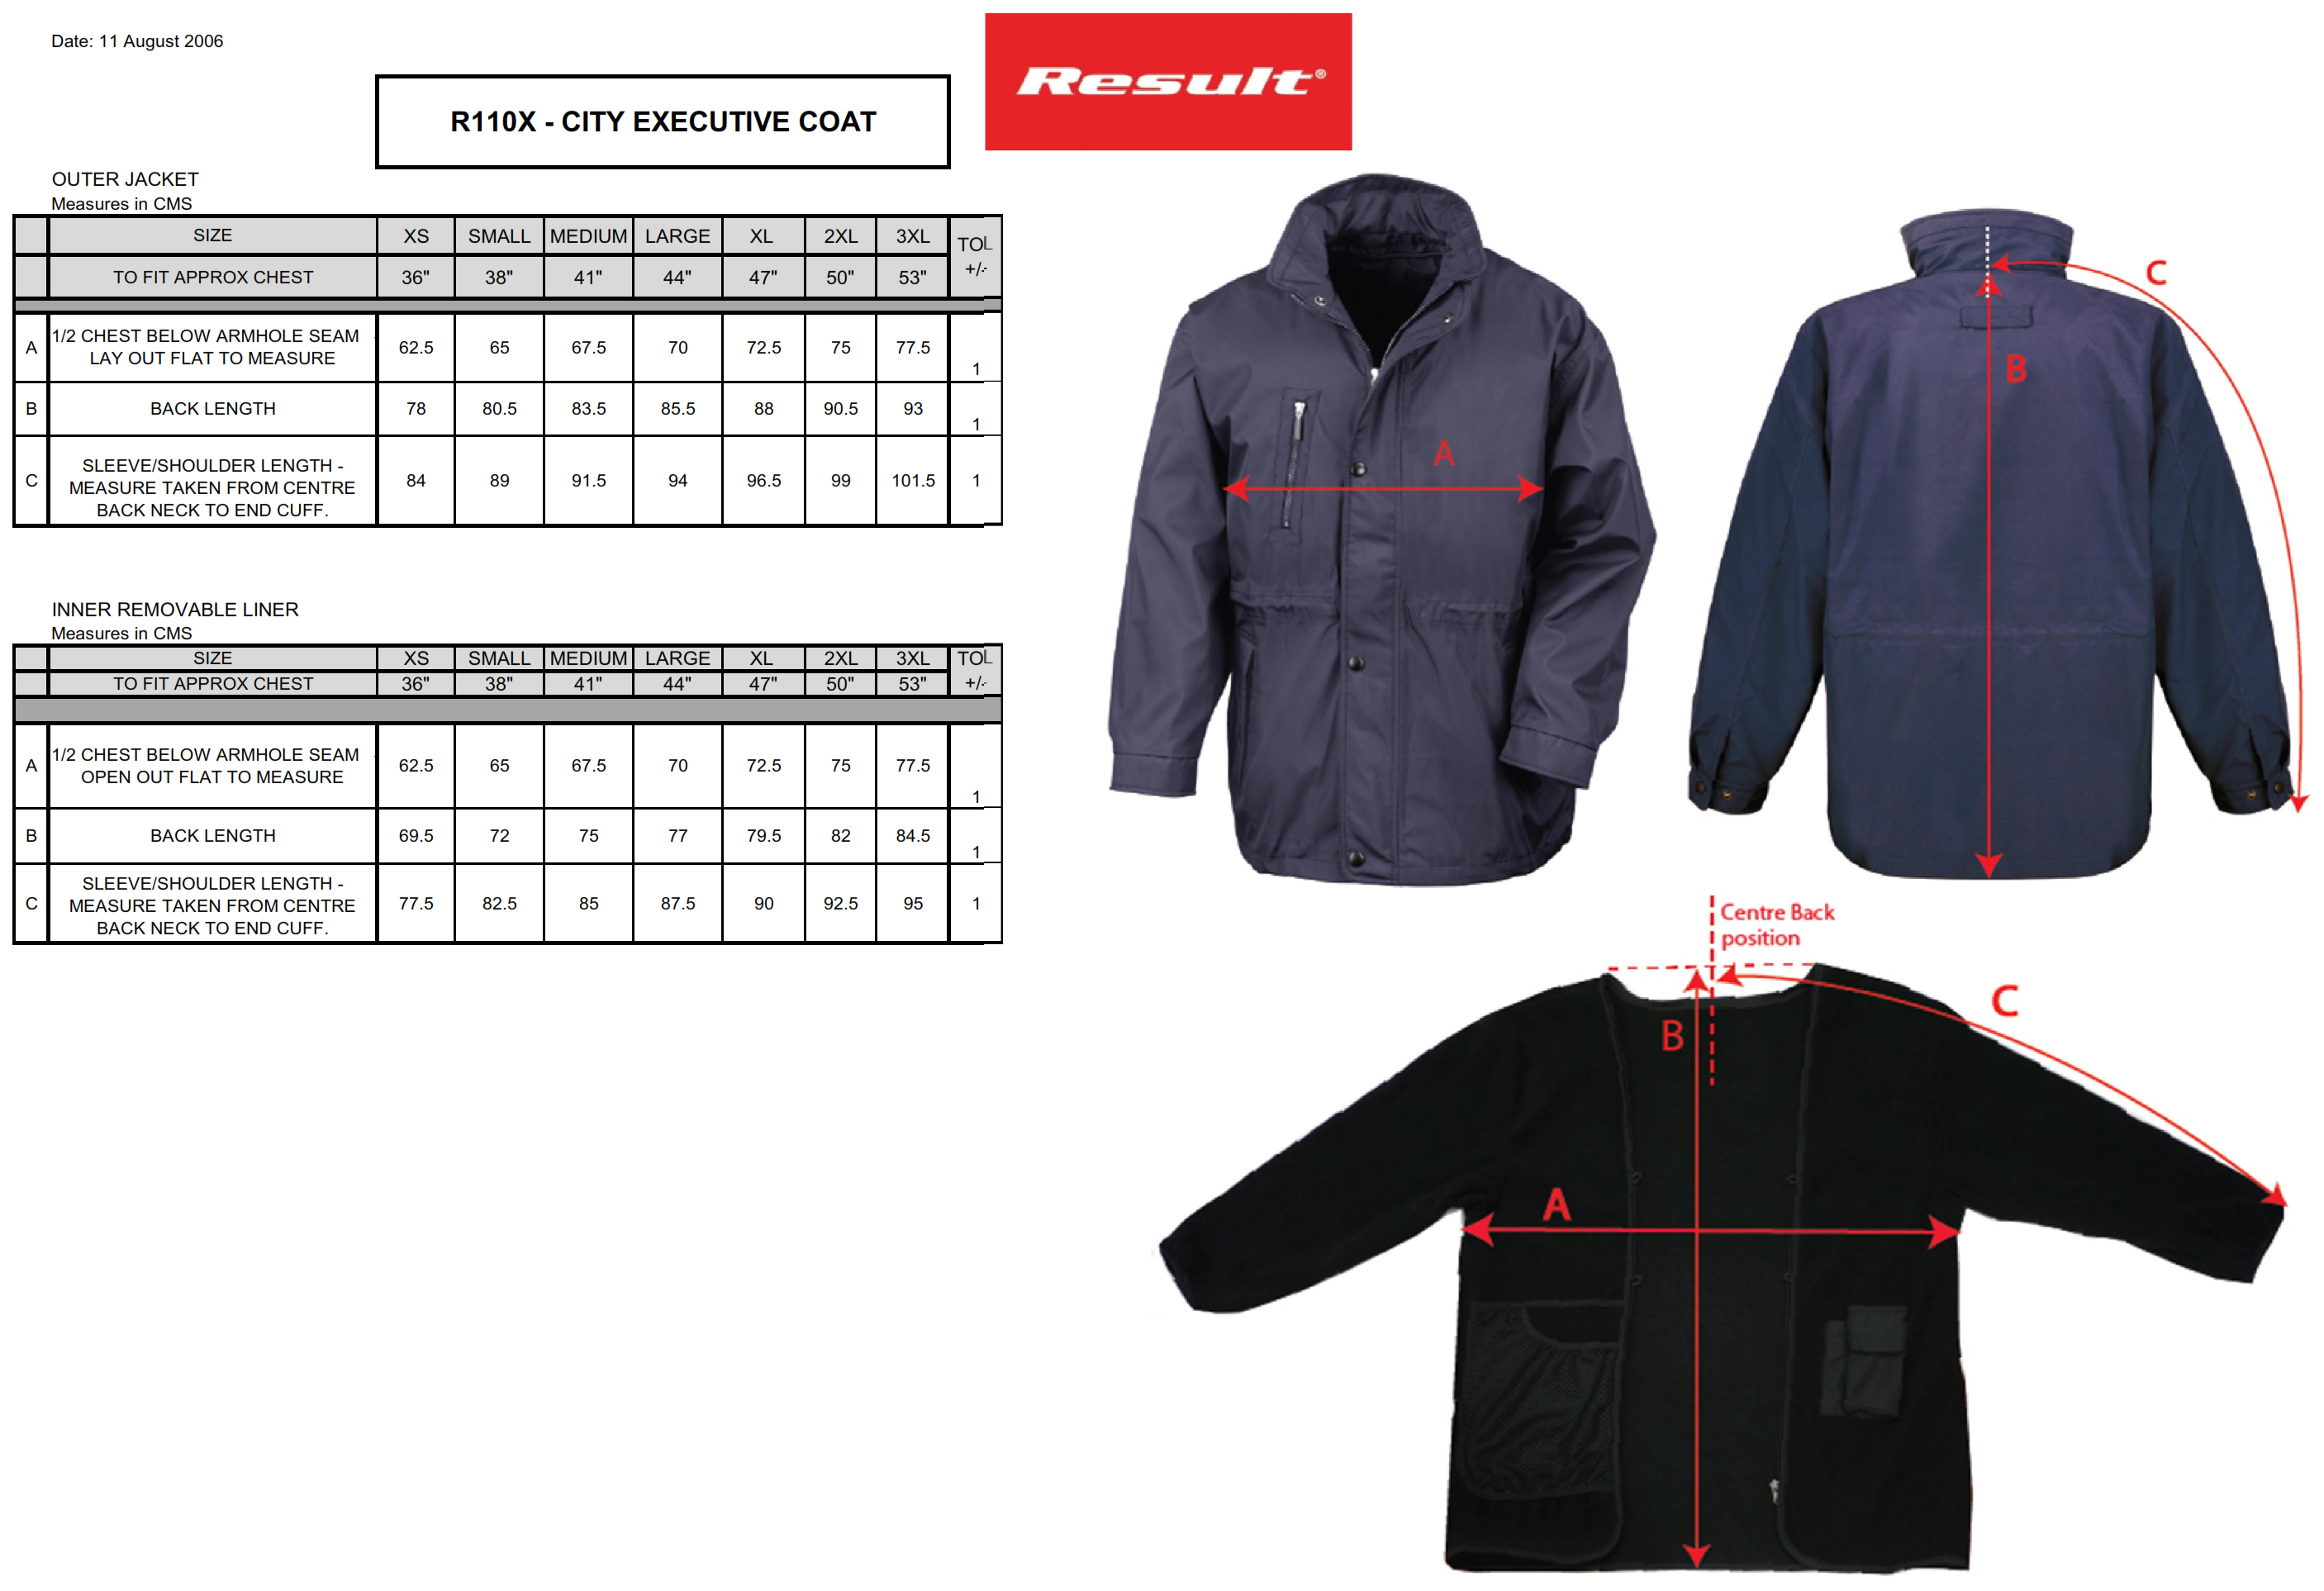 Result: City Executive Jacket R110X